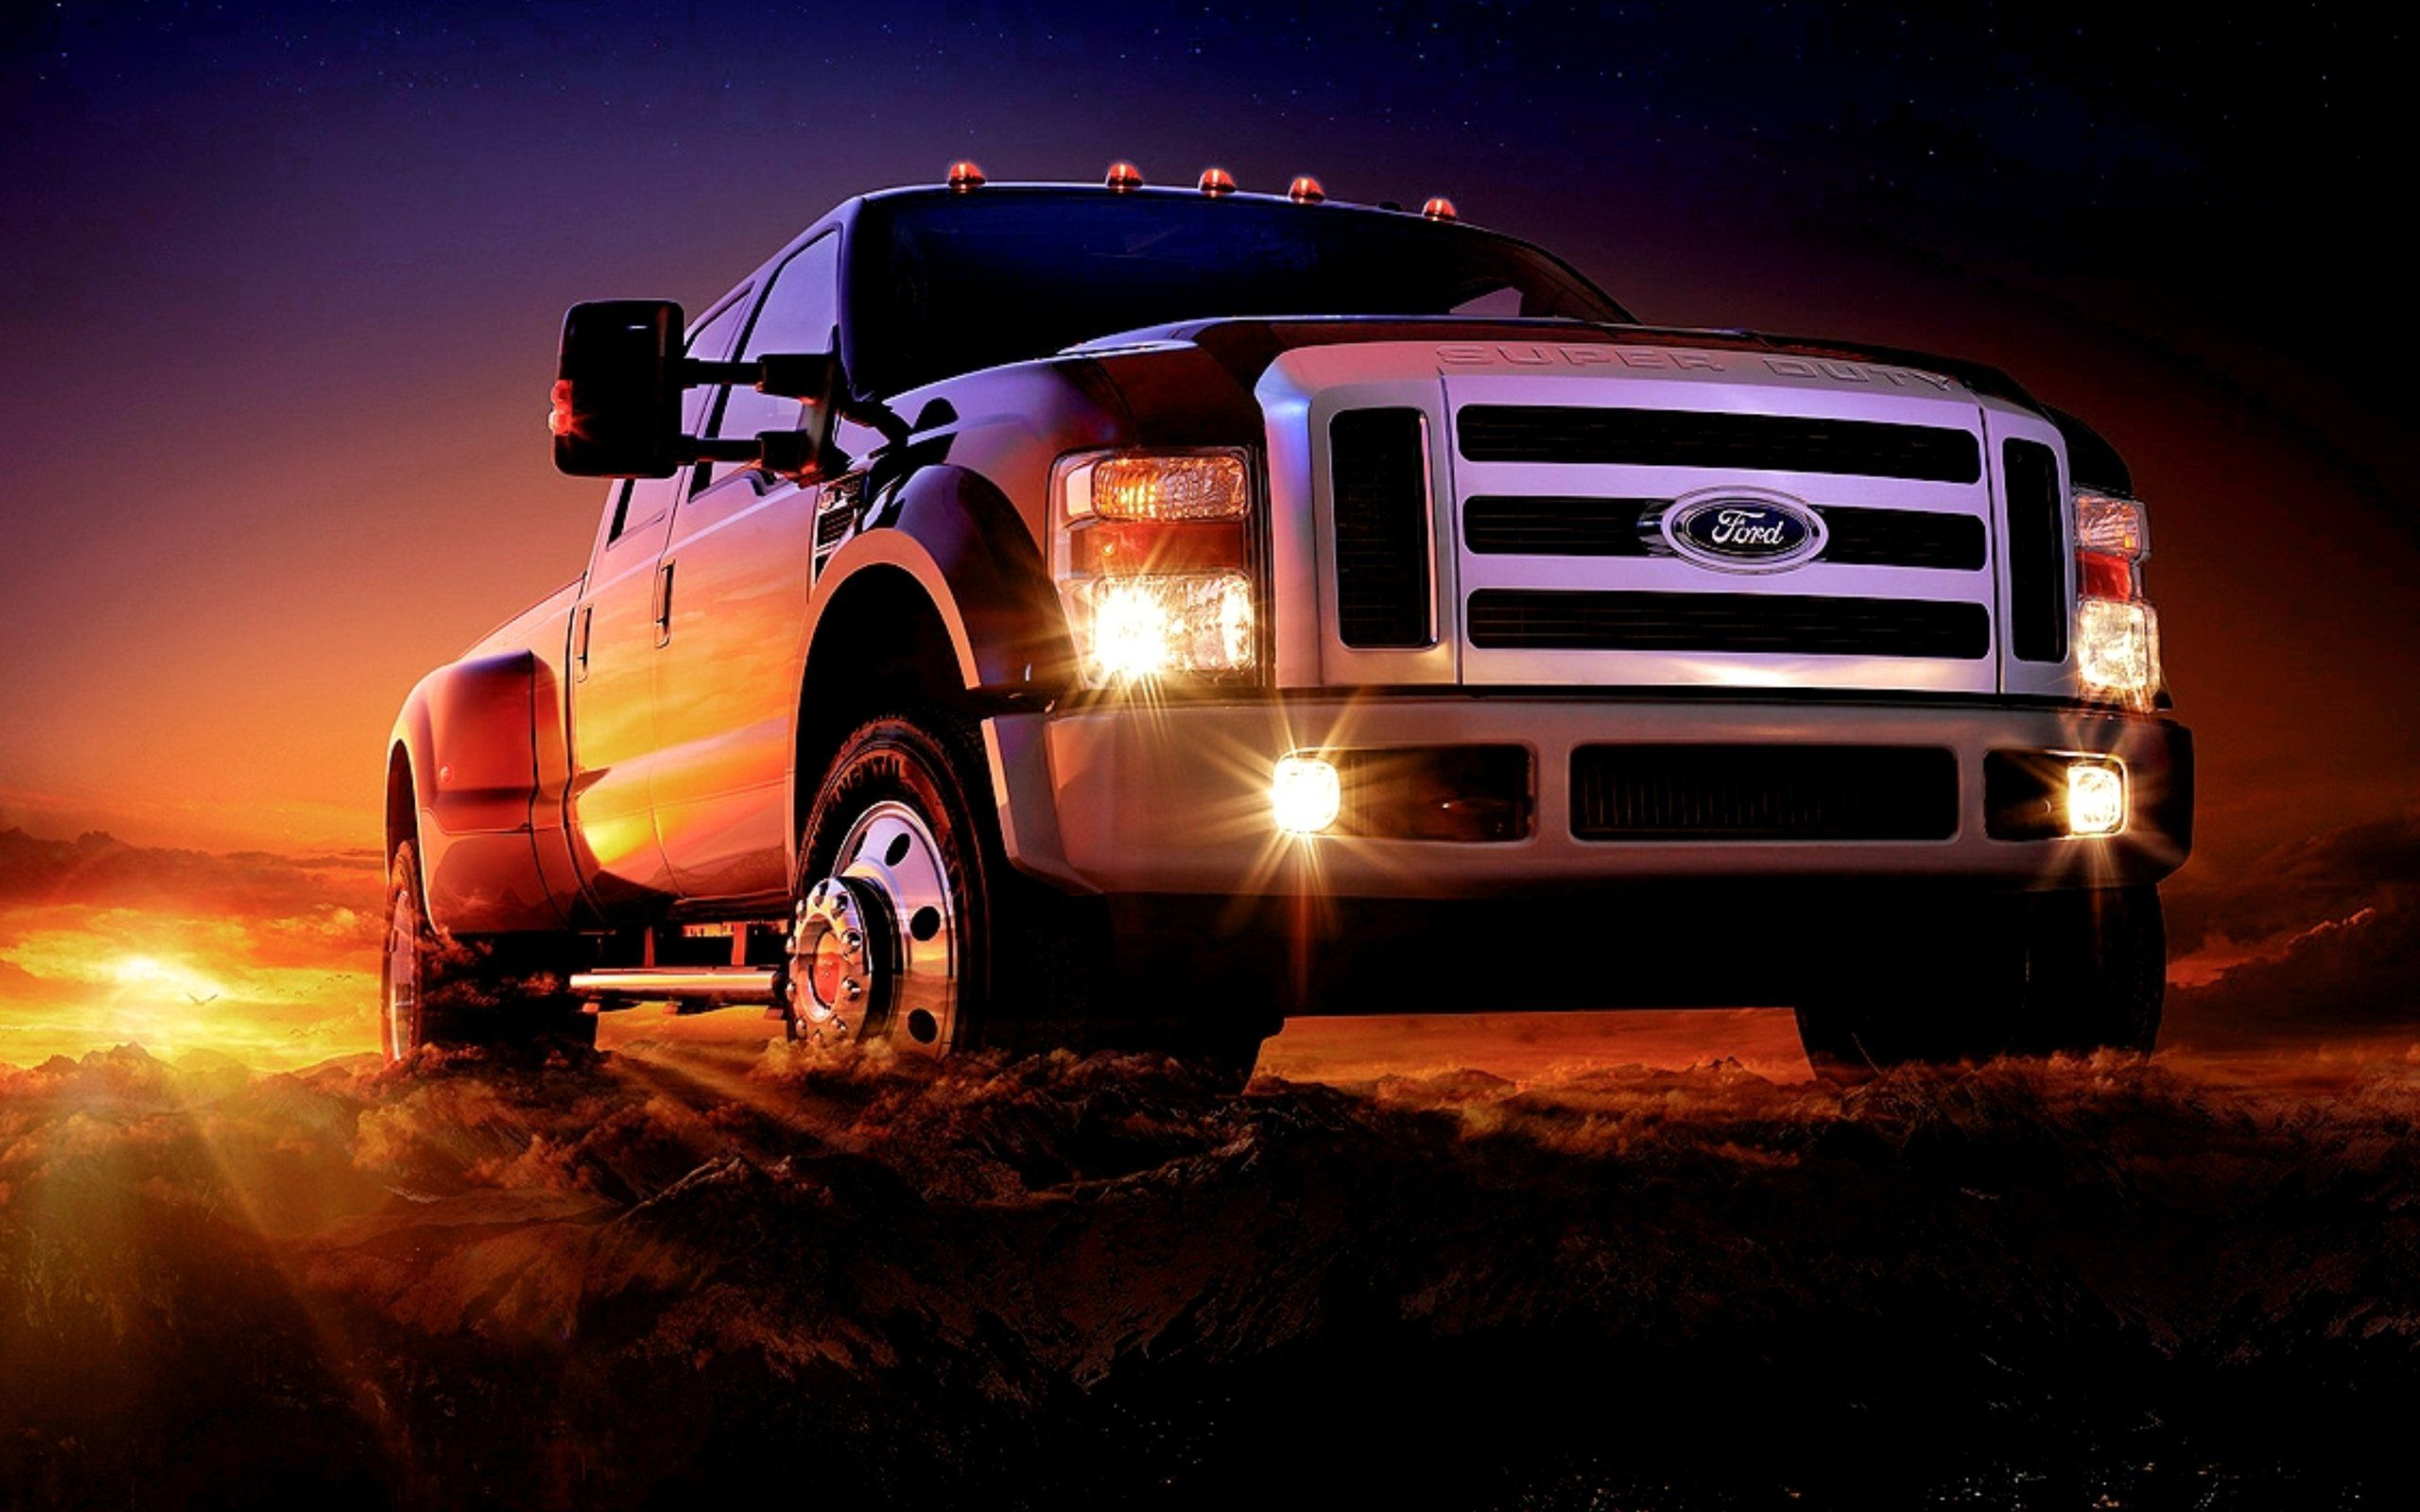 X Ford Truck Wallpapers Big Ford Trucks Lifted Ford Trucks Ford Trucks